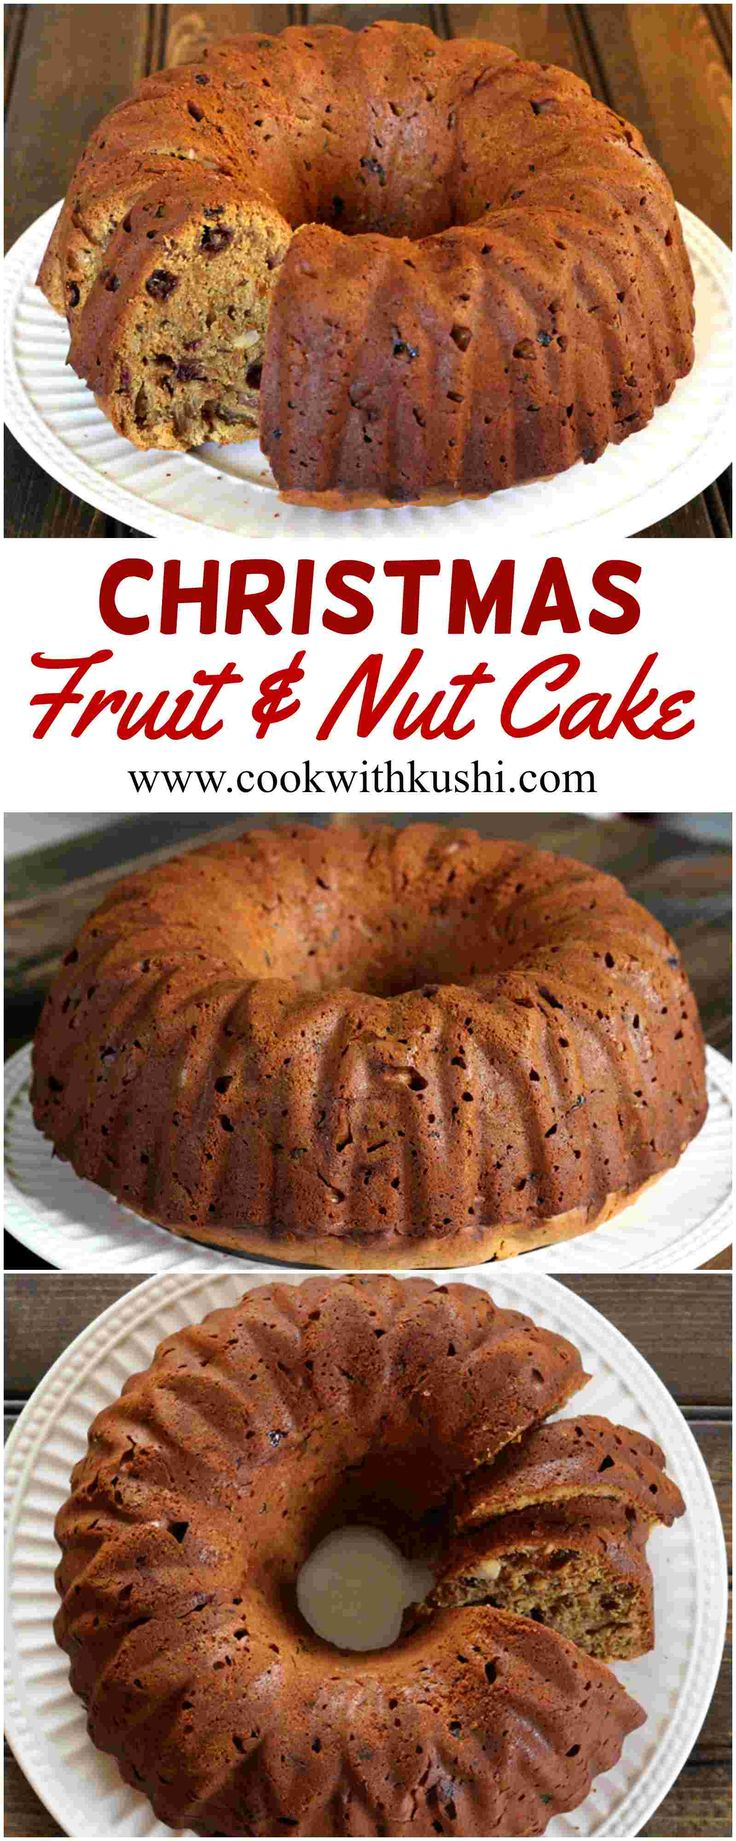 Christmas Fruit and Nut Cake is a super delicious cake, loaded with dry fruits and nuts that will be loved by people of all age groups. #buzzfeedfood #bhgfood #feedfeed #christmas #holiday #thanksgiving #cake #dessert #wine #recipe #bake #festival